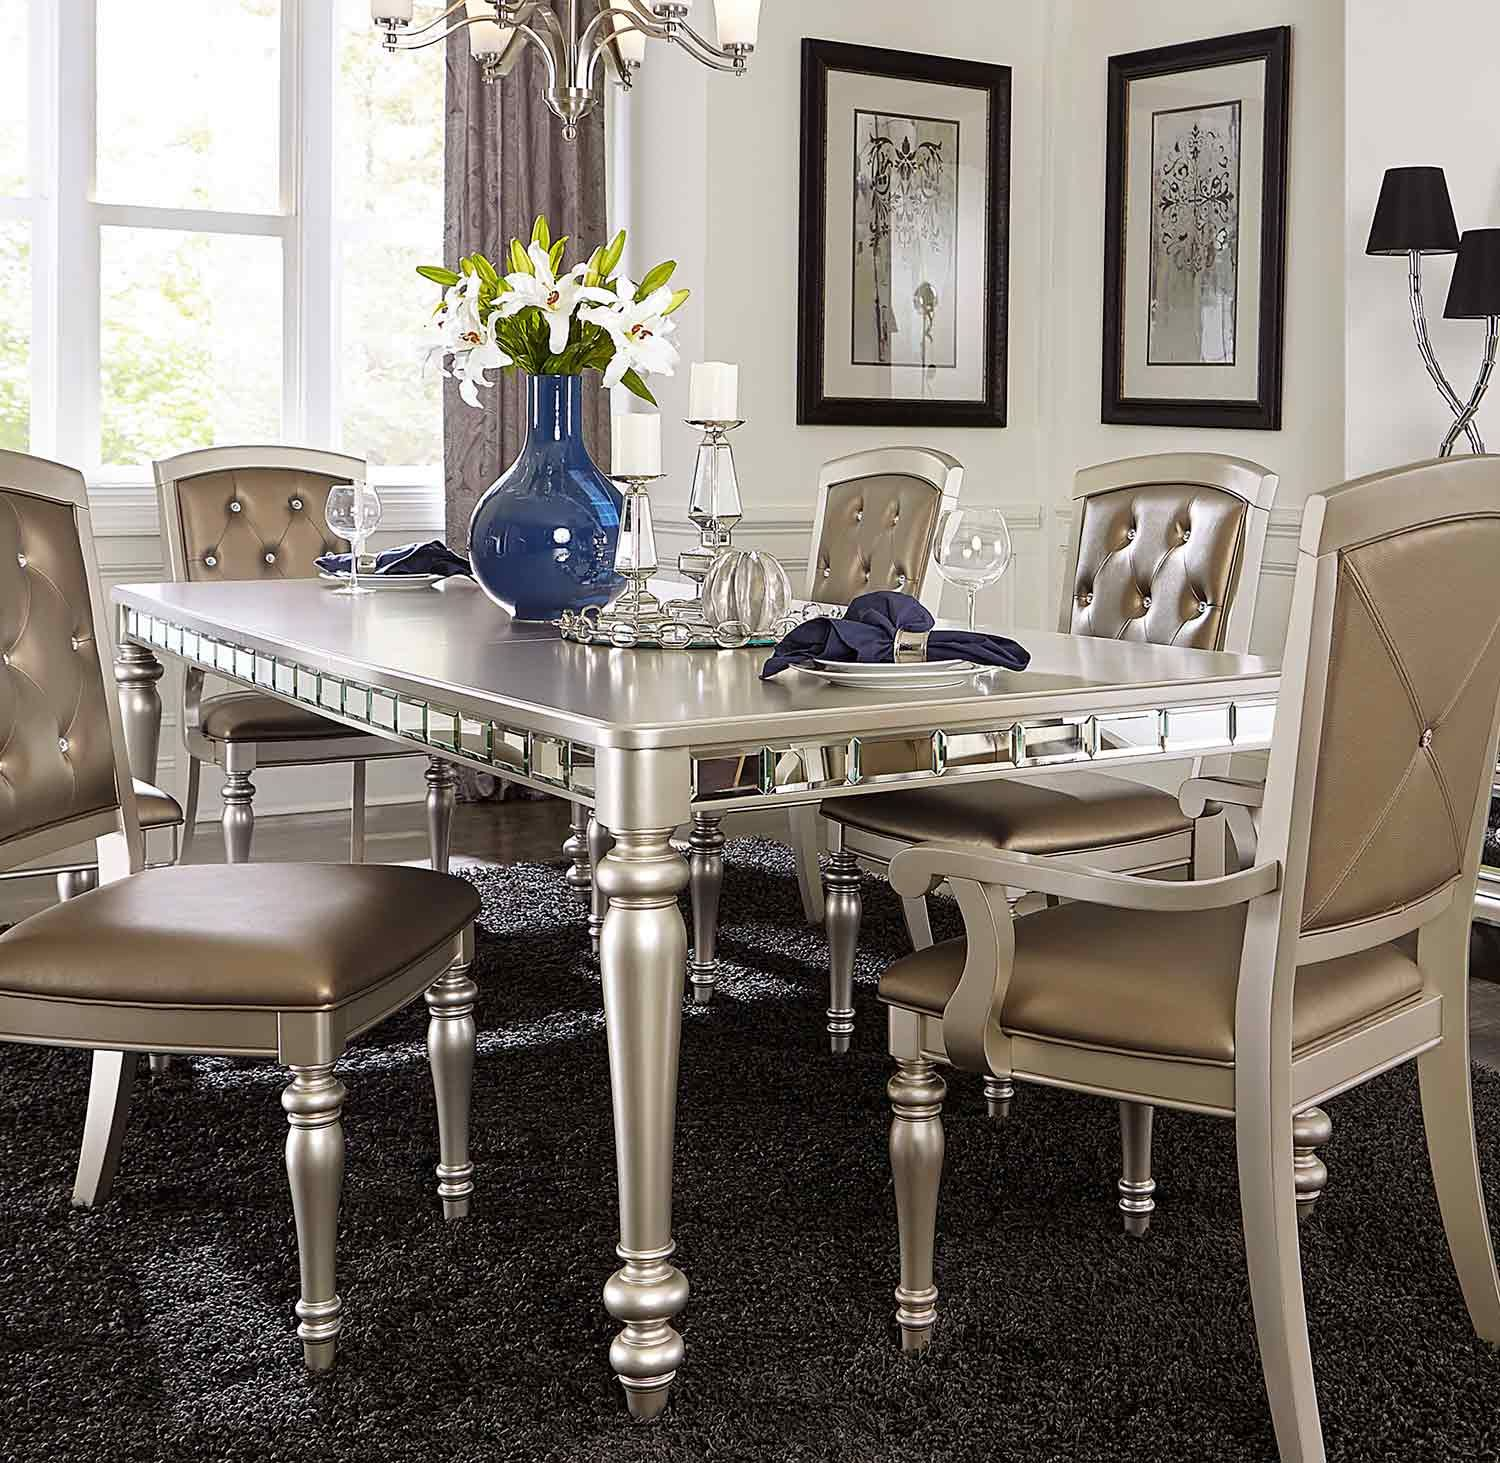 Homelegance Orsina Dining Table Silver N At Homelementcom - Silver mirrored dining table